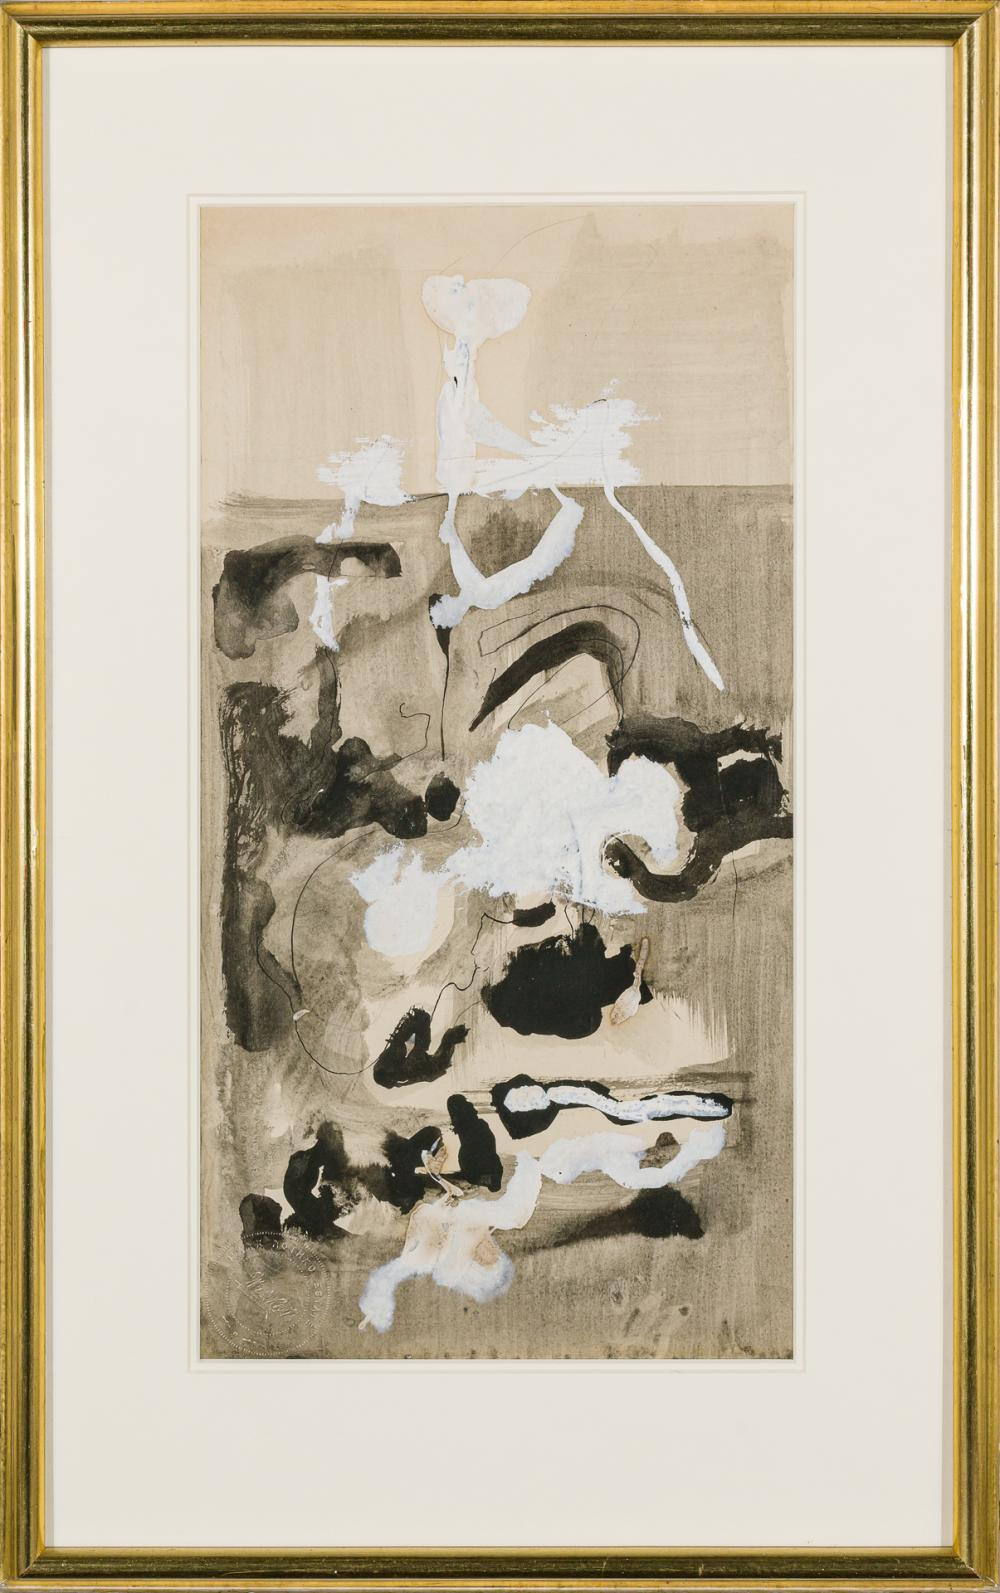 MARK ROTHKO, American (1903-1970), Untitled, c. 1948, brush and black ink, watercolor and gouache on paper, embossed with the artist...